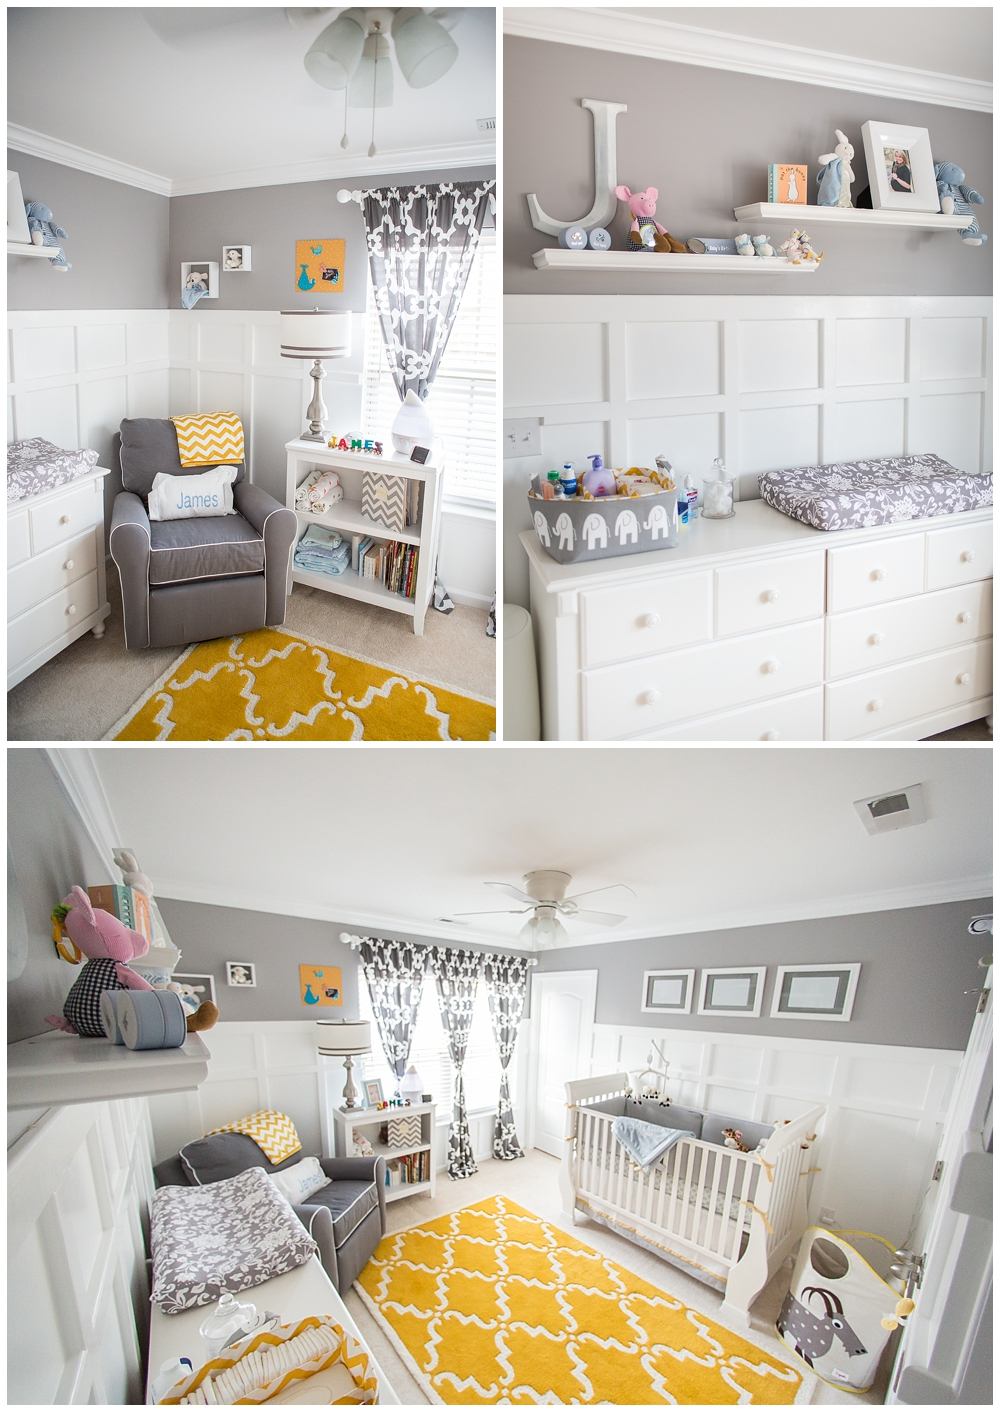 25 Heartwarming Nursery Ideas To Make Your Newborn's Safe